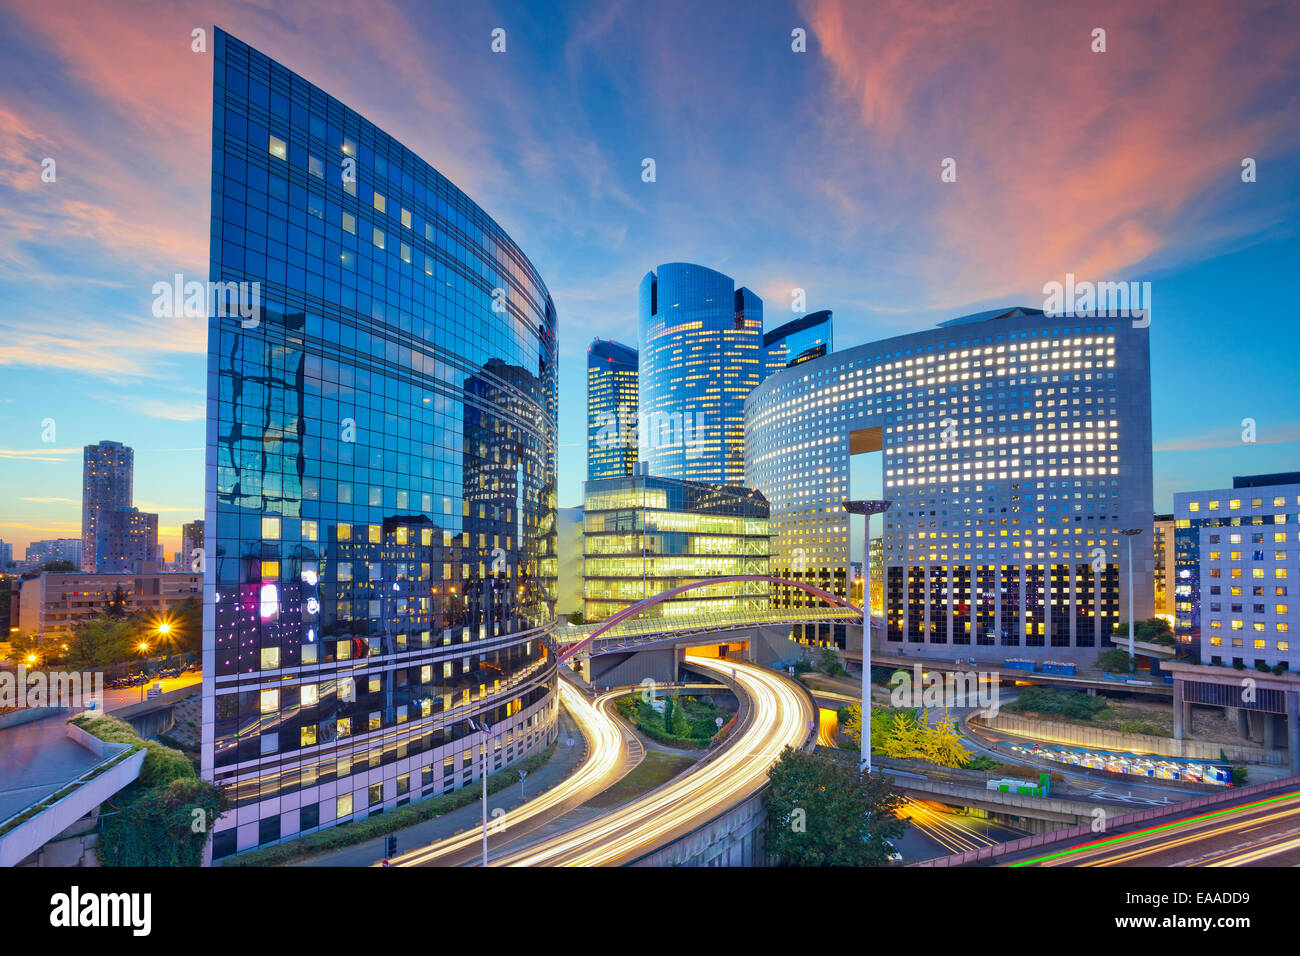 Image of office buildings in modern part of Paris- La Defense during sunset. Stock Photo